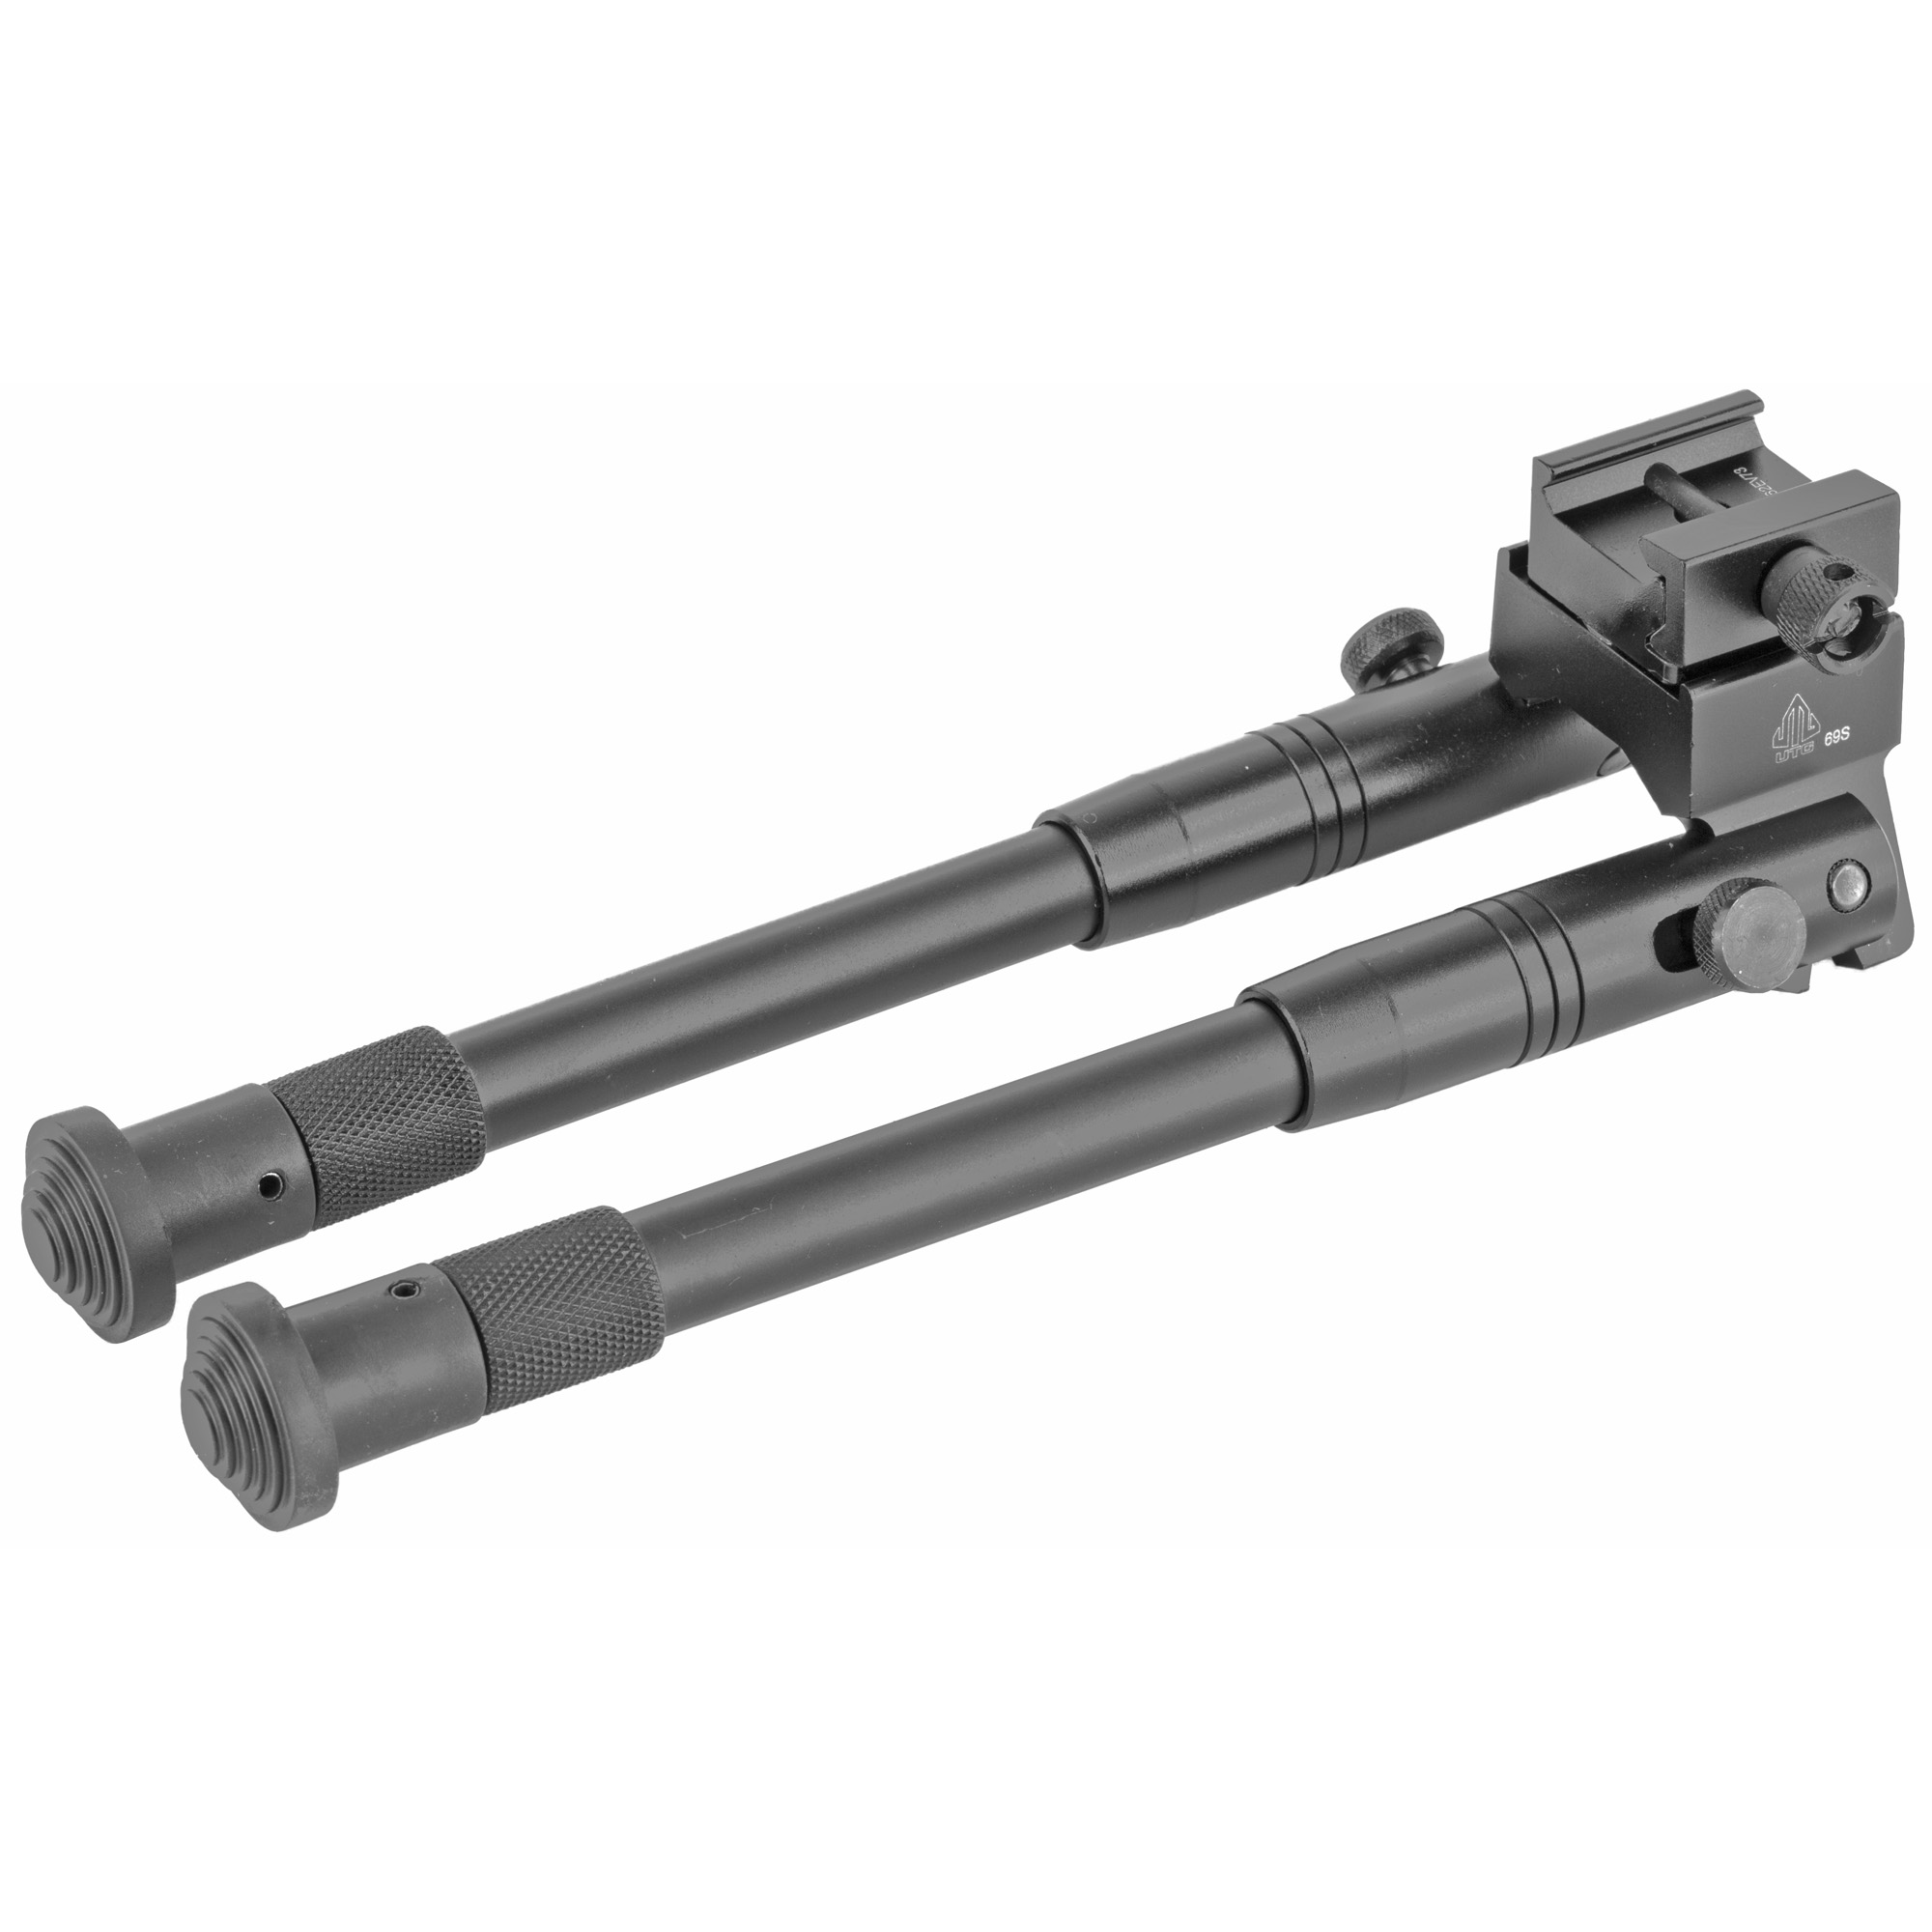 """Whether you need a sturdy mount for your AR-15 rifle or tactical sniper rifle"""" this high-tech bipod features a Picatinny mount and swivel stud adapter for mounting on virtually any rifle configuration. The rifle bipod includes spring operated Posi-Lock legs that are foldable and fully adjustable"""" and prevent tipping. The gun bipod is an overall height of 8.7 to 10.6 inches and the direction adjustable mount allows for approximately 10 degrees of left or right panning without leg movement. Spring tension and a lockable collar provide both flexible and secure adjustments."""